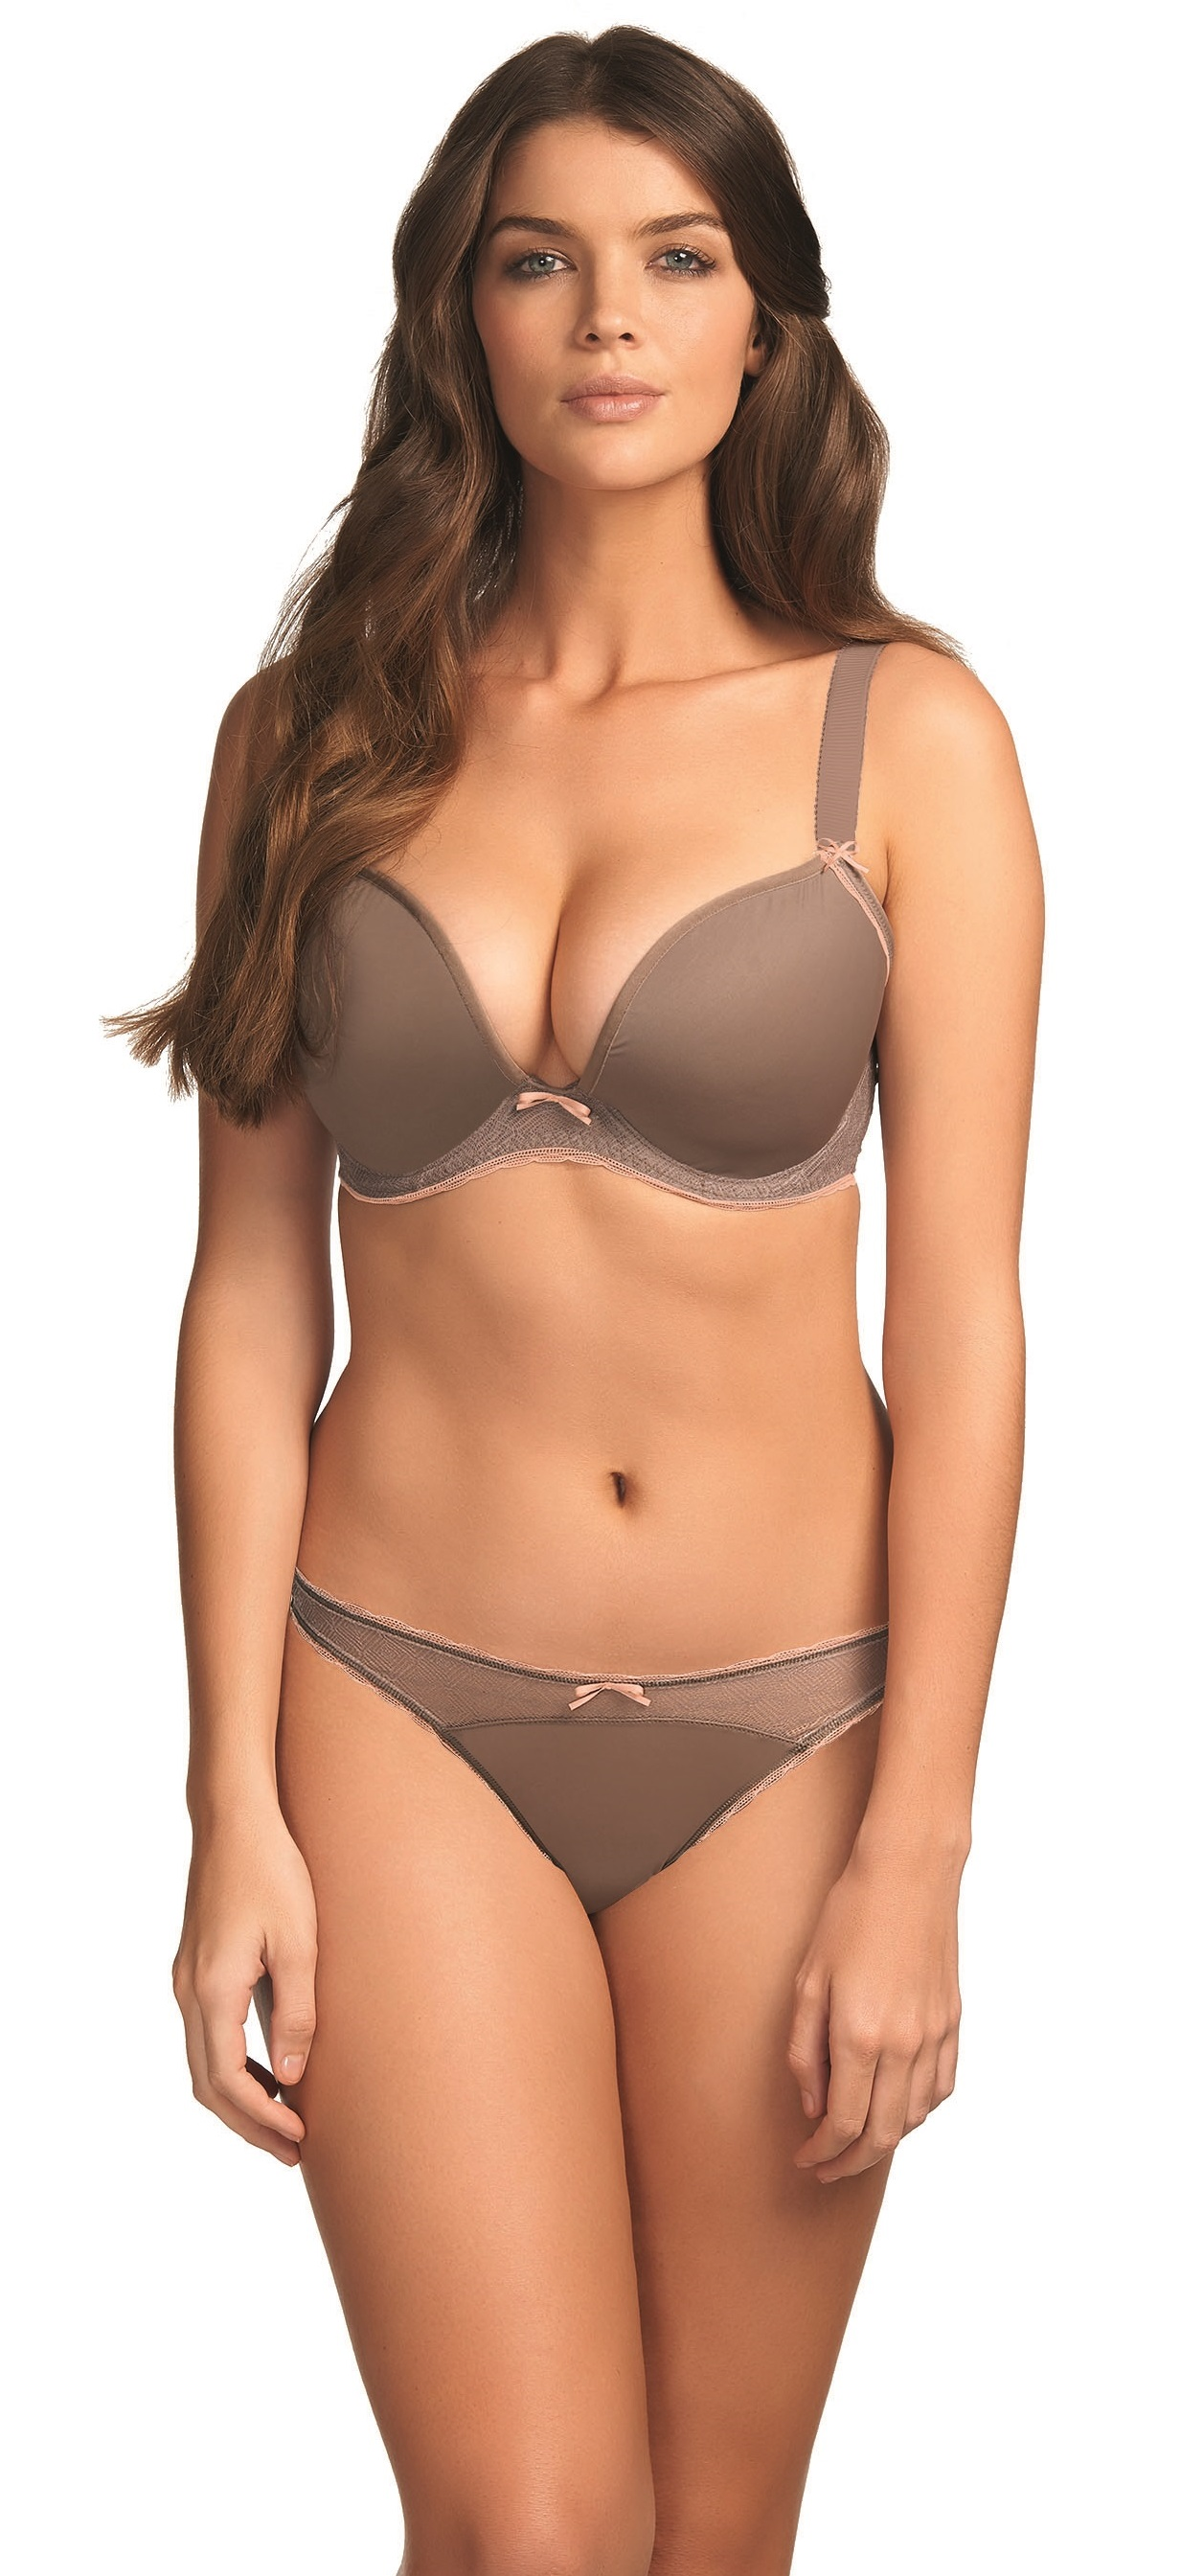 ff2e576ee53 Freya Deco Vibe AA1704 Mocha UW Molded Plunge Bra With J-HOOK NWT Large  sizes